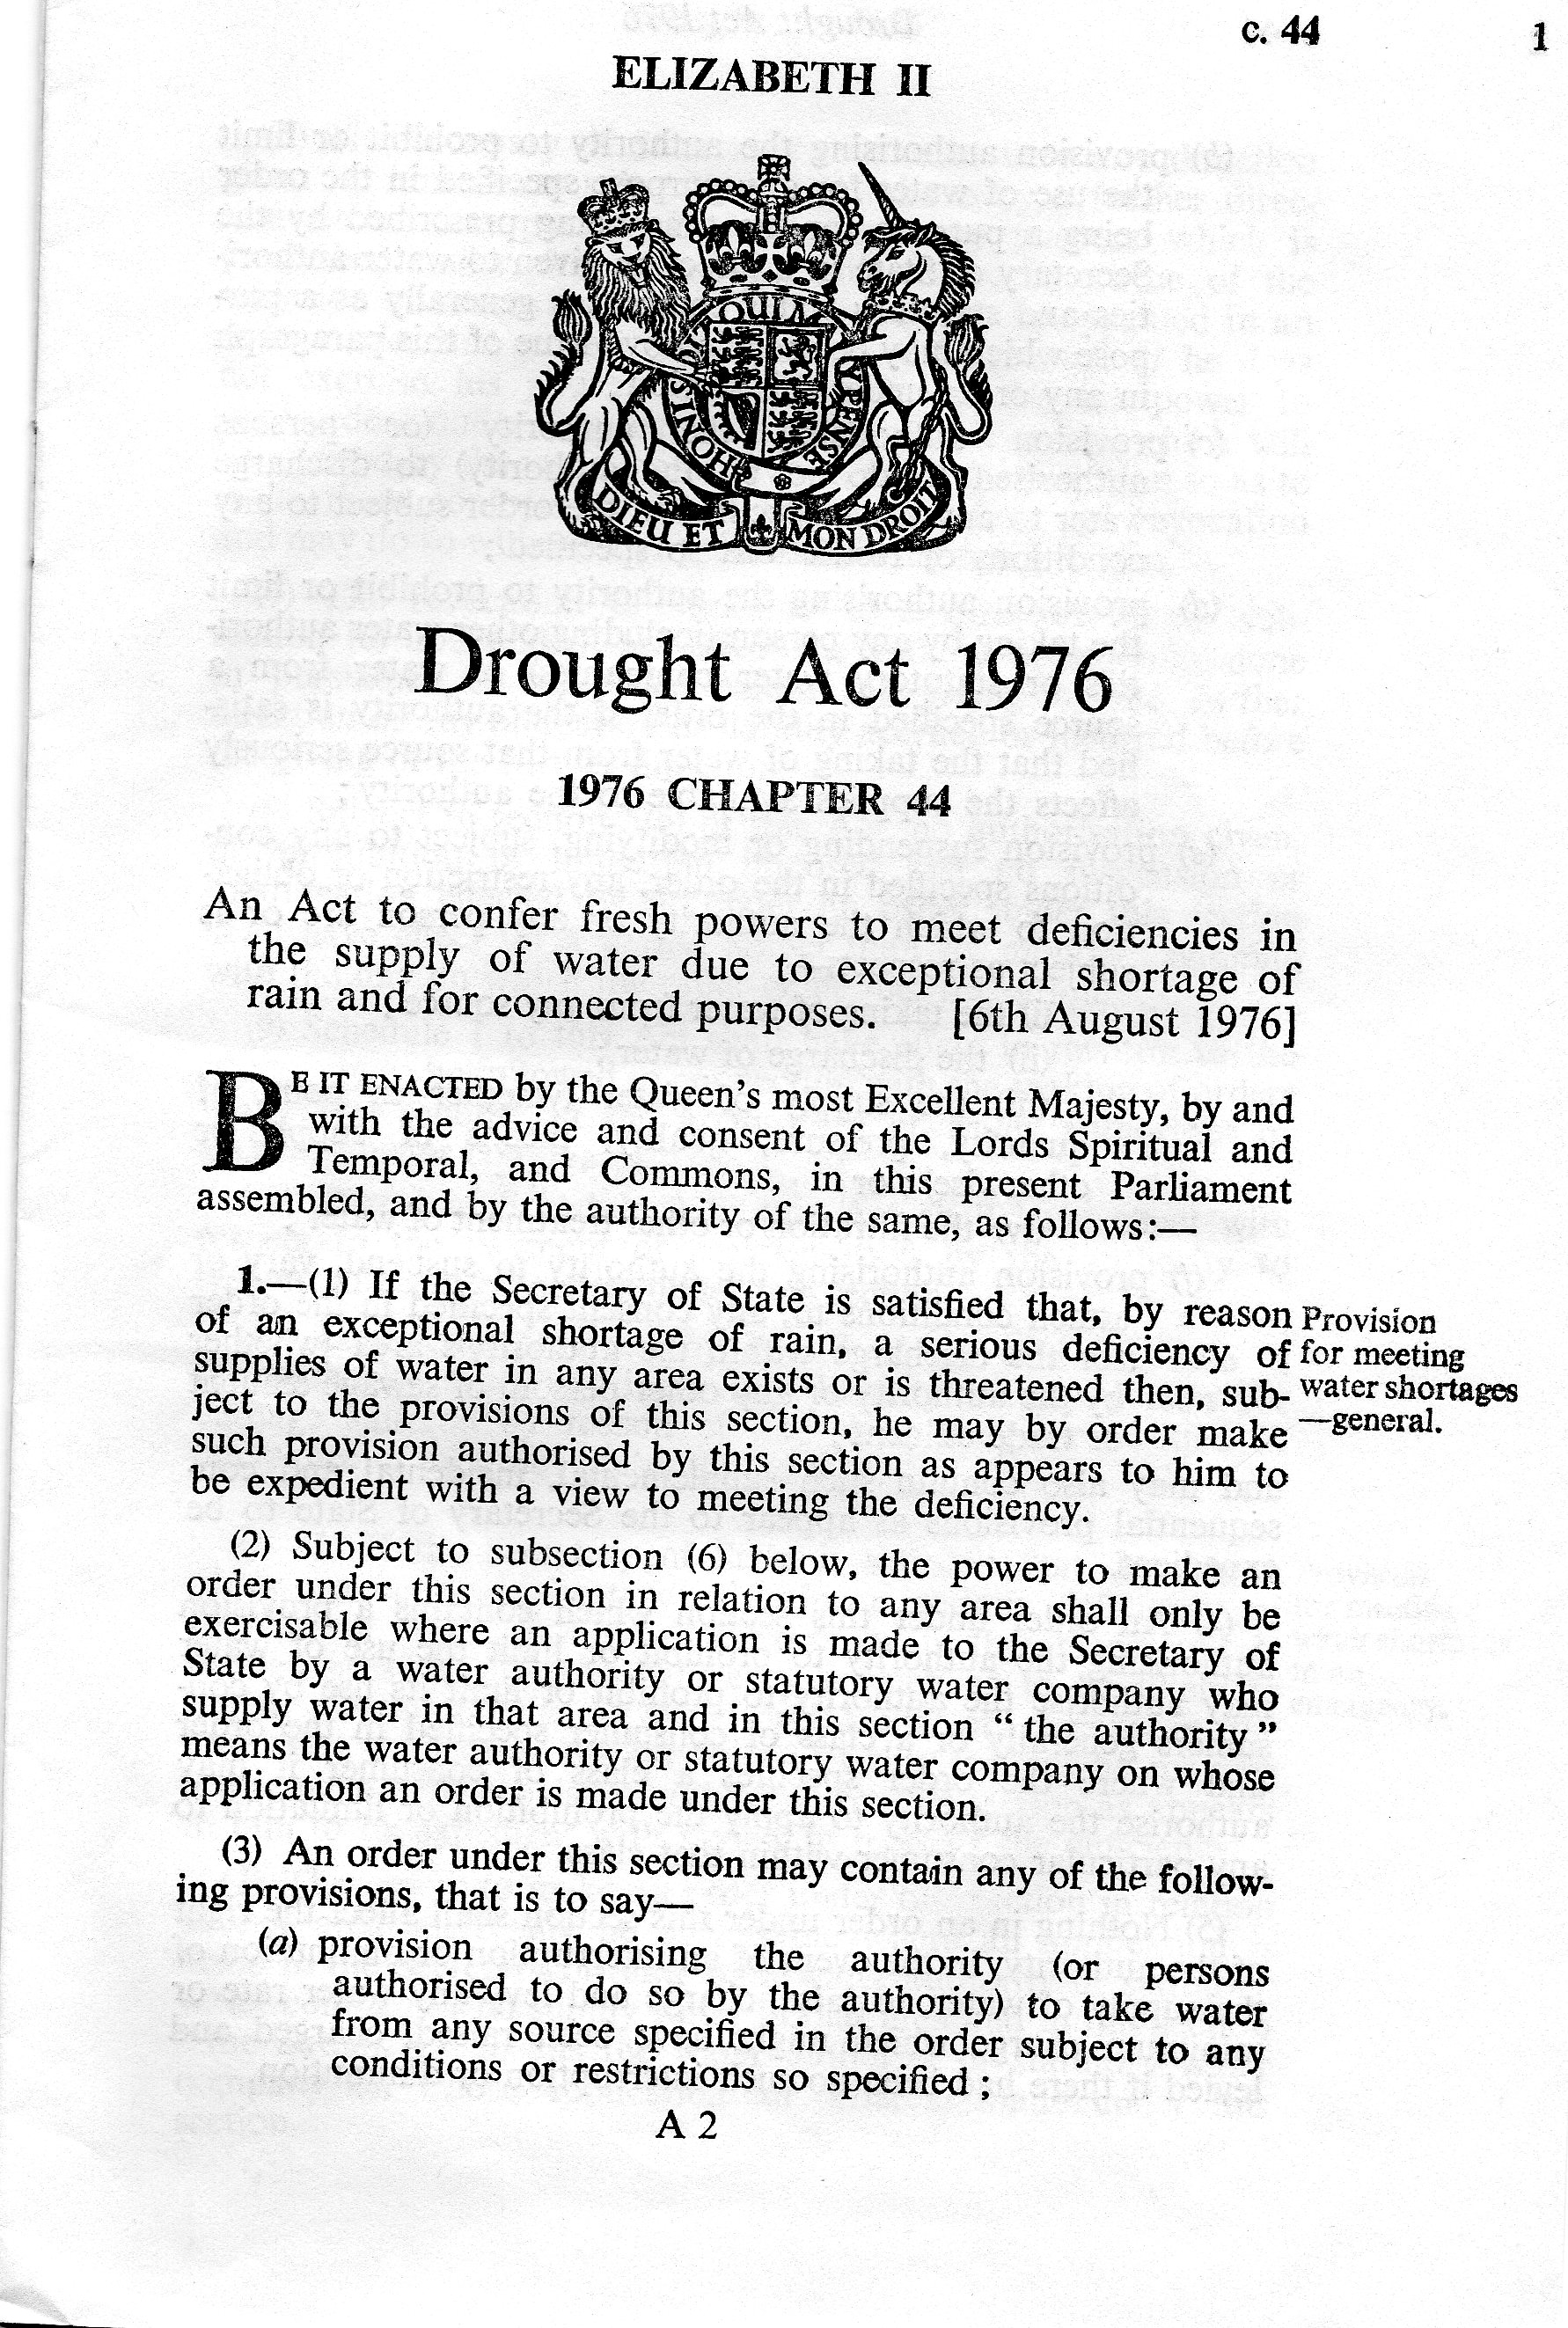 1976 Drought Act